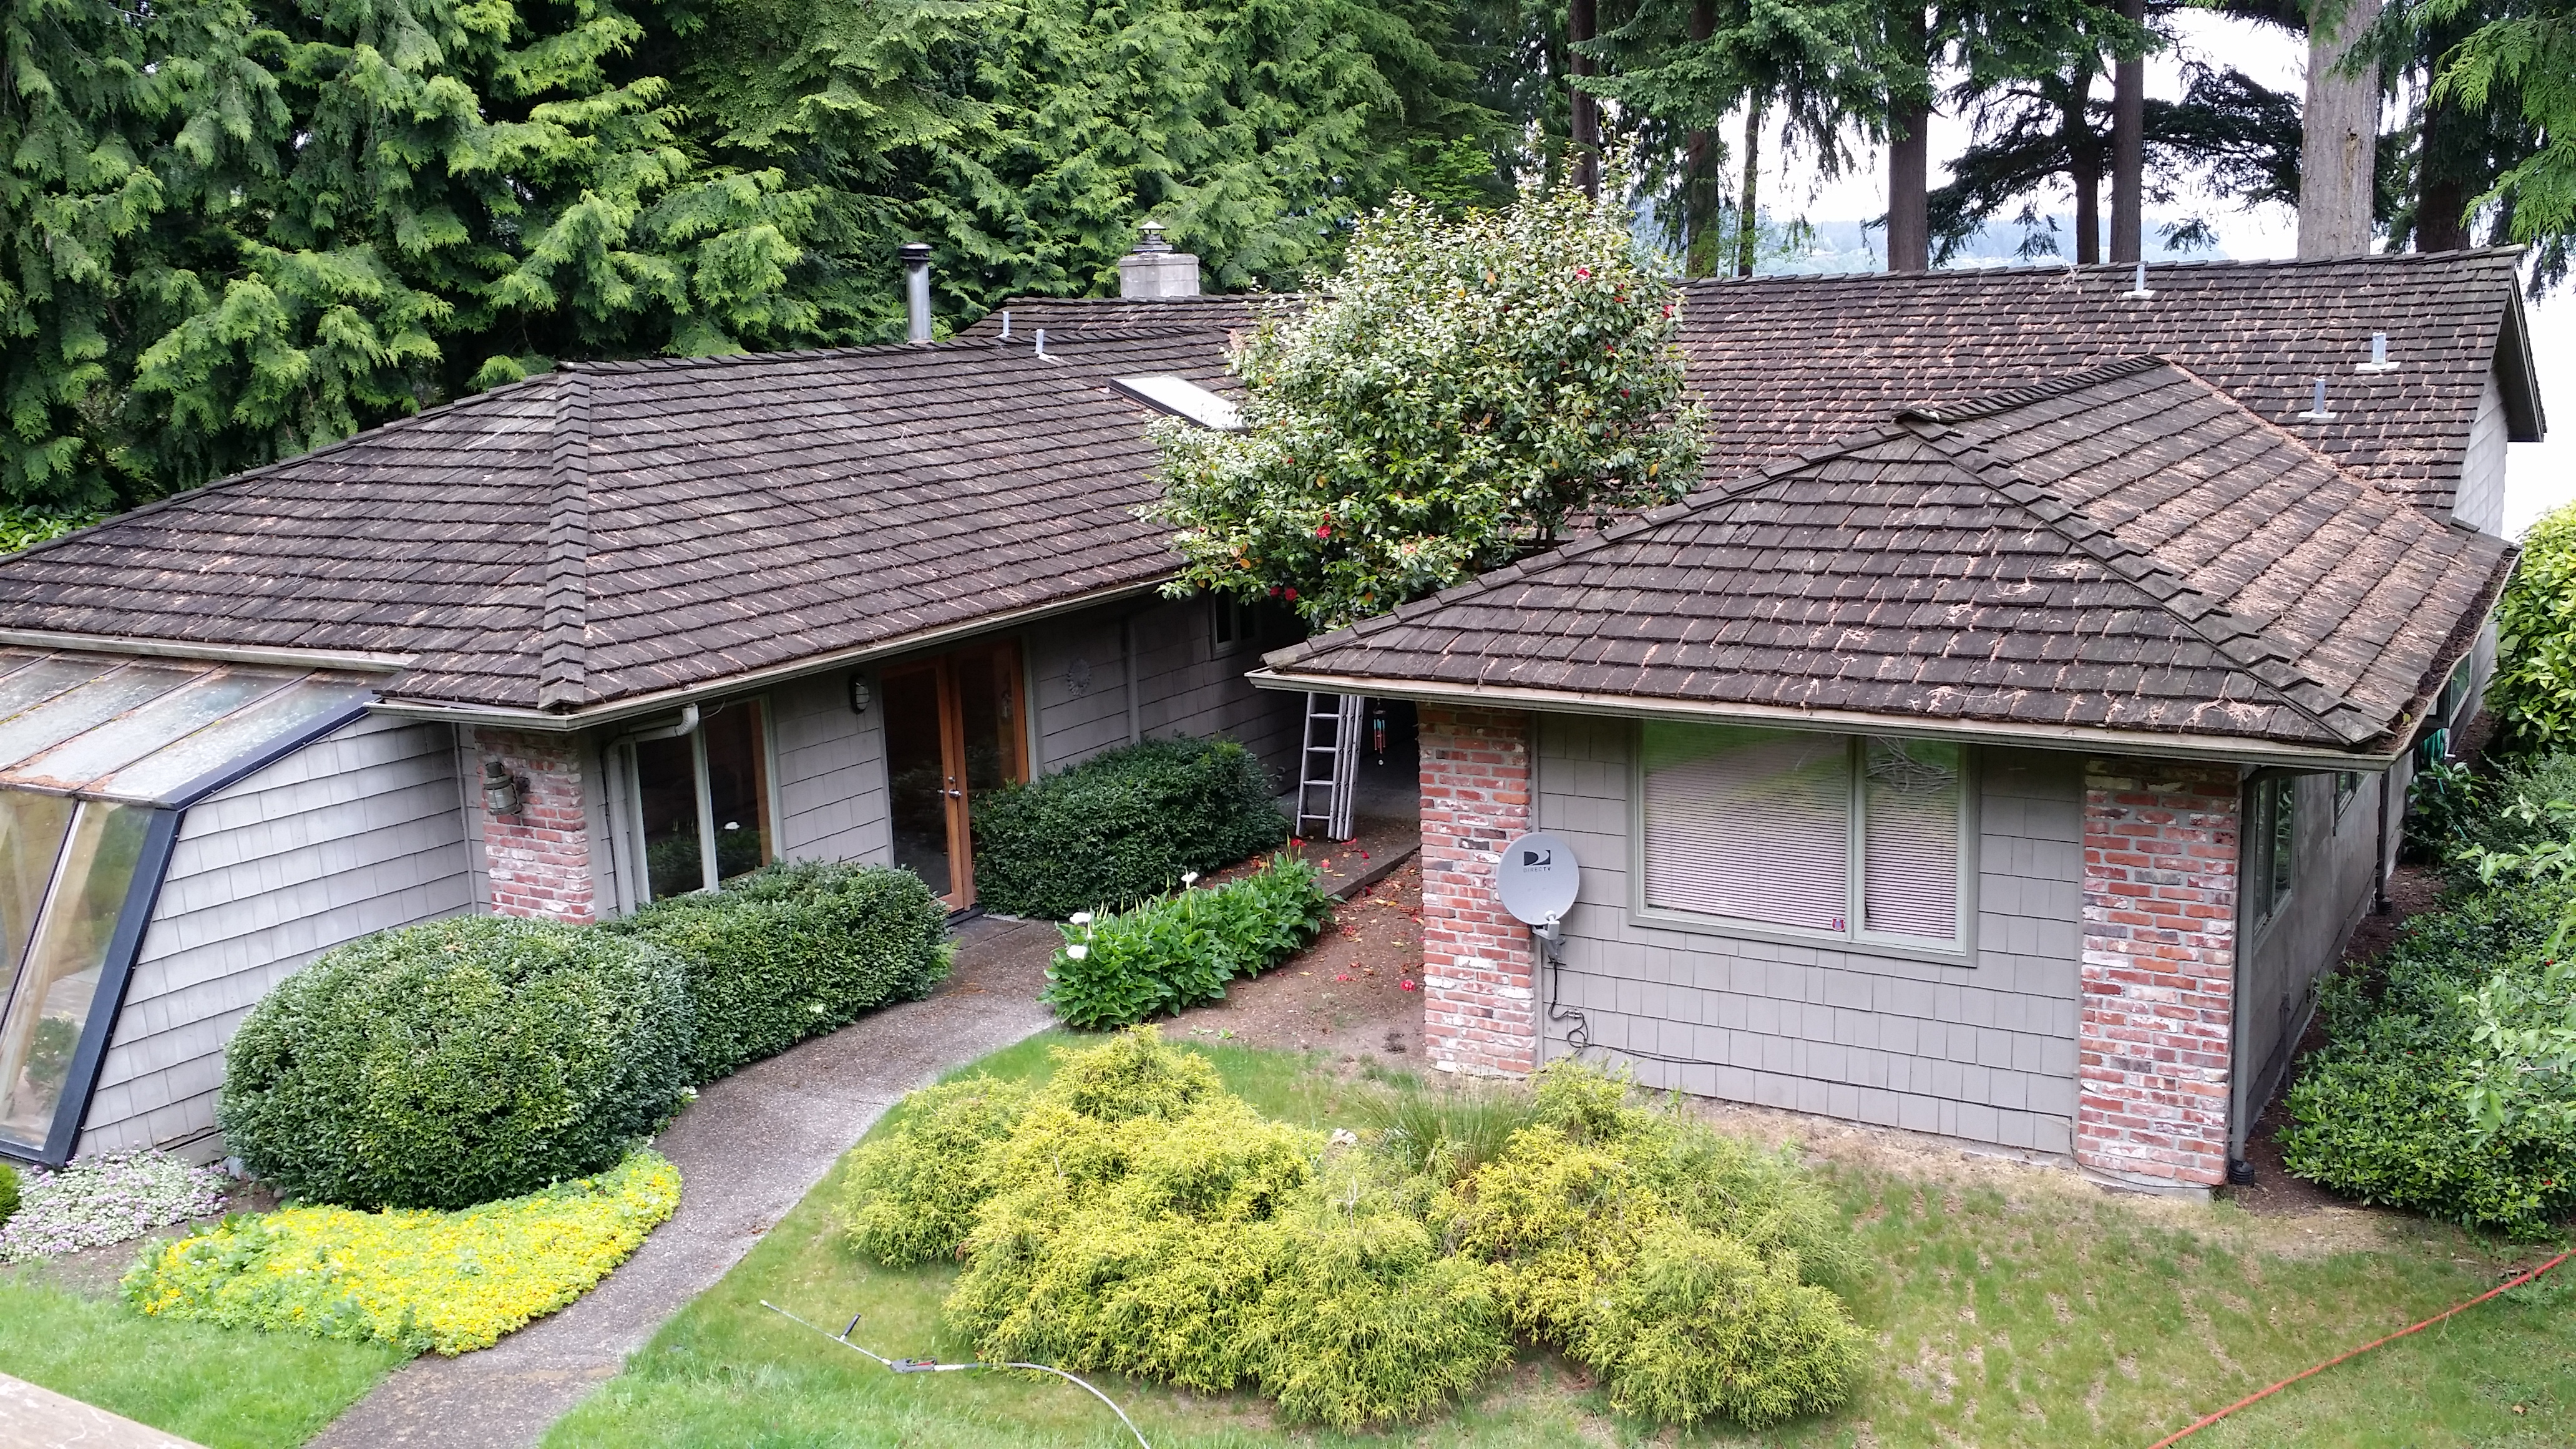 House improvement, roof cleaning service providers in Bellevue, Bainbridge and Seattle. Talk to us now